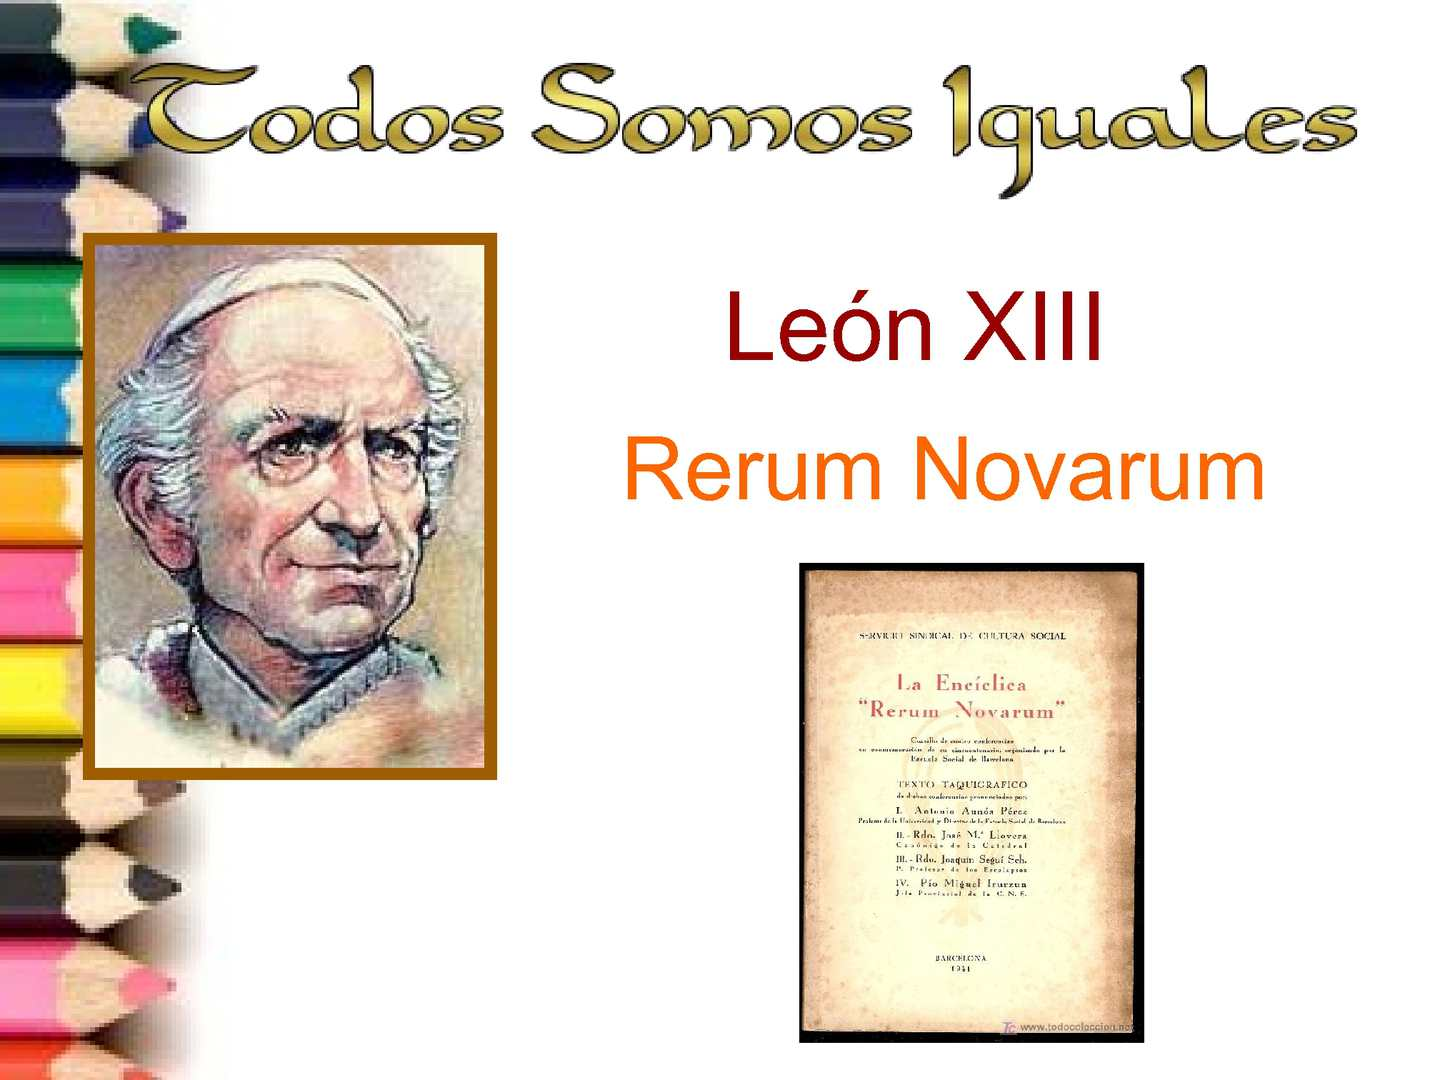 rerum novarum by pope leo xiii essay Pope leo xiii time period 5/15/1891 description on may 15, 1891, pope leo xiii issued an encyclical, rerum novarum, on the rights and duties of capital and labor.